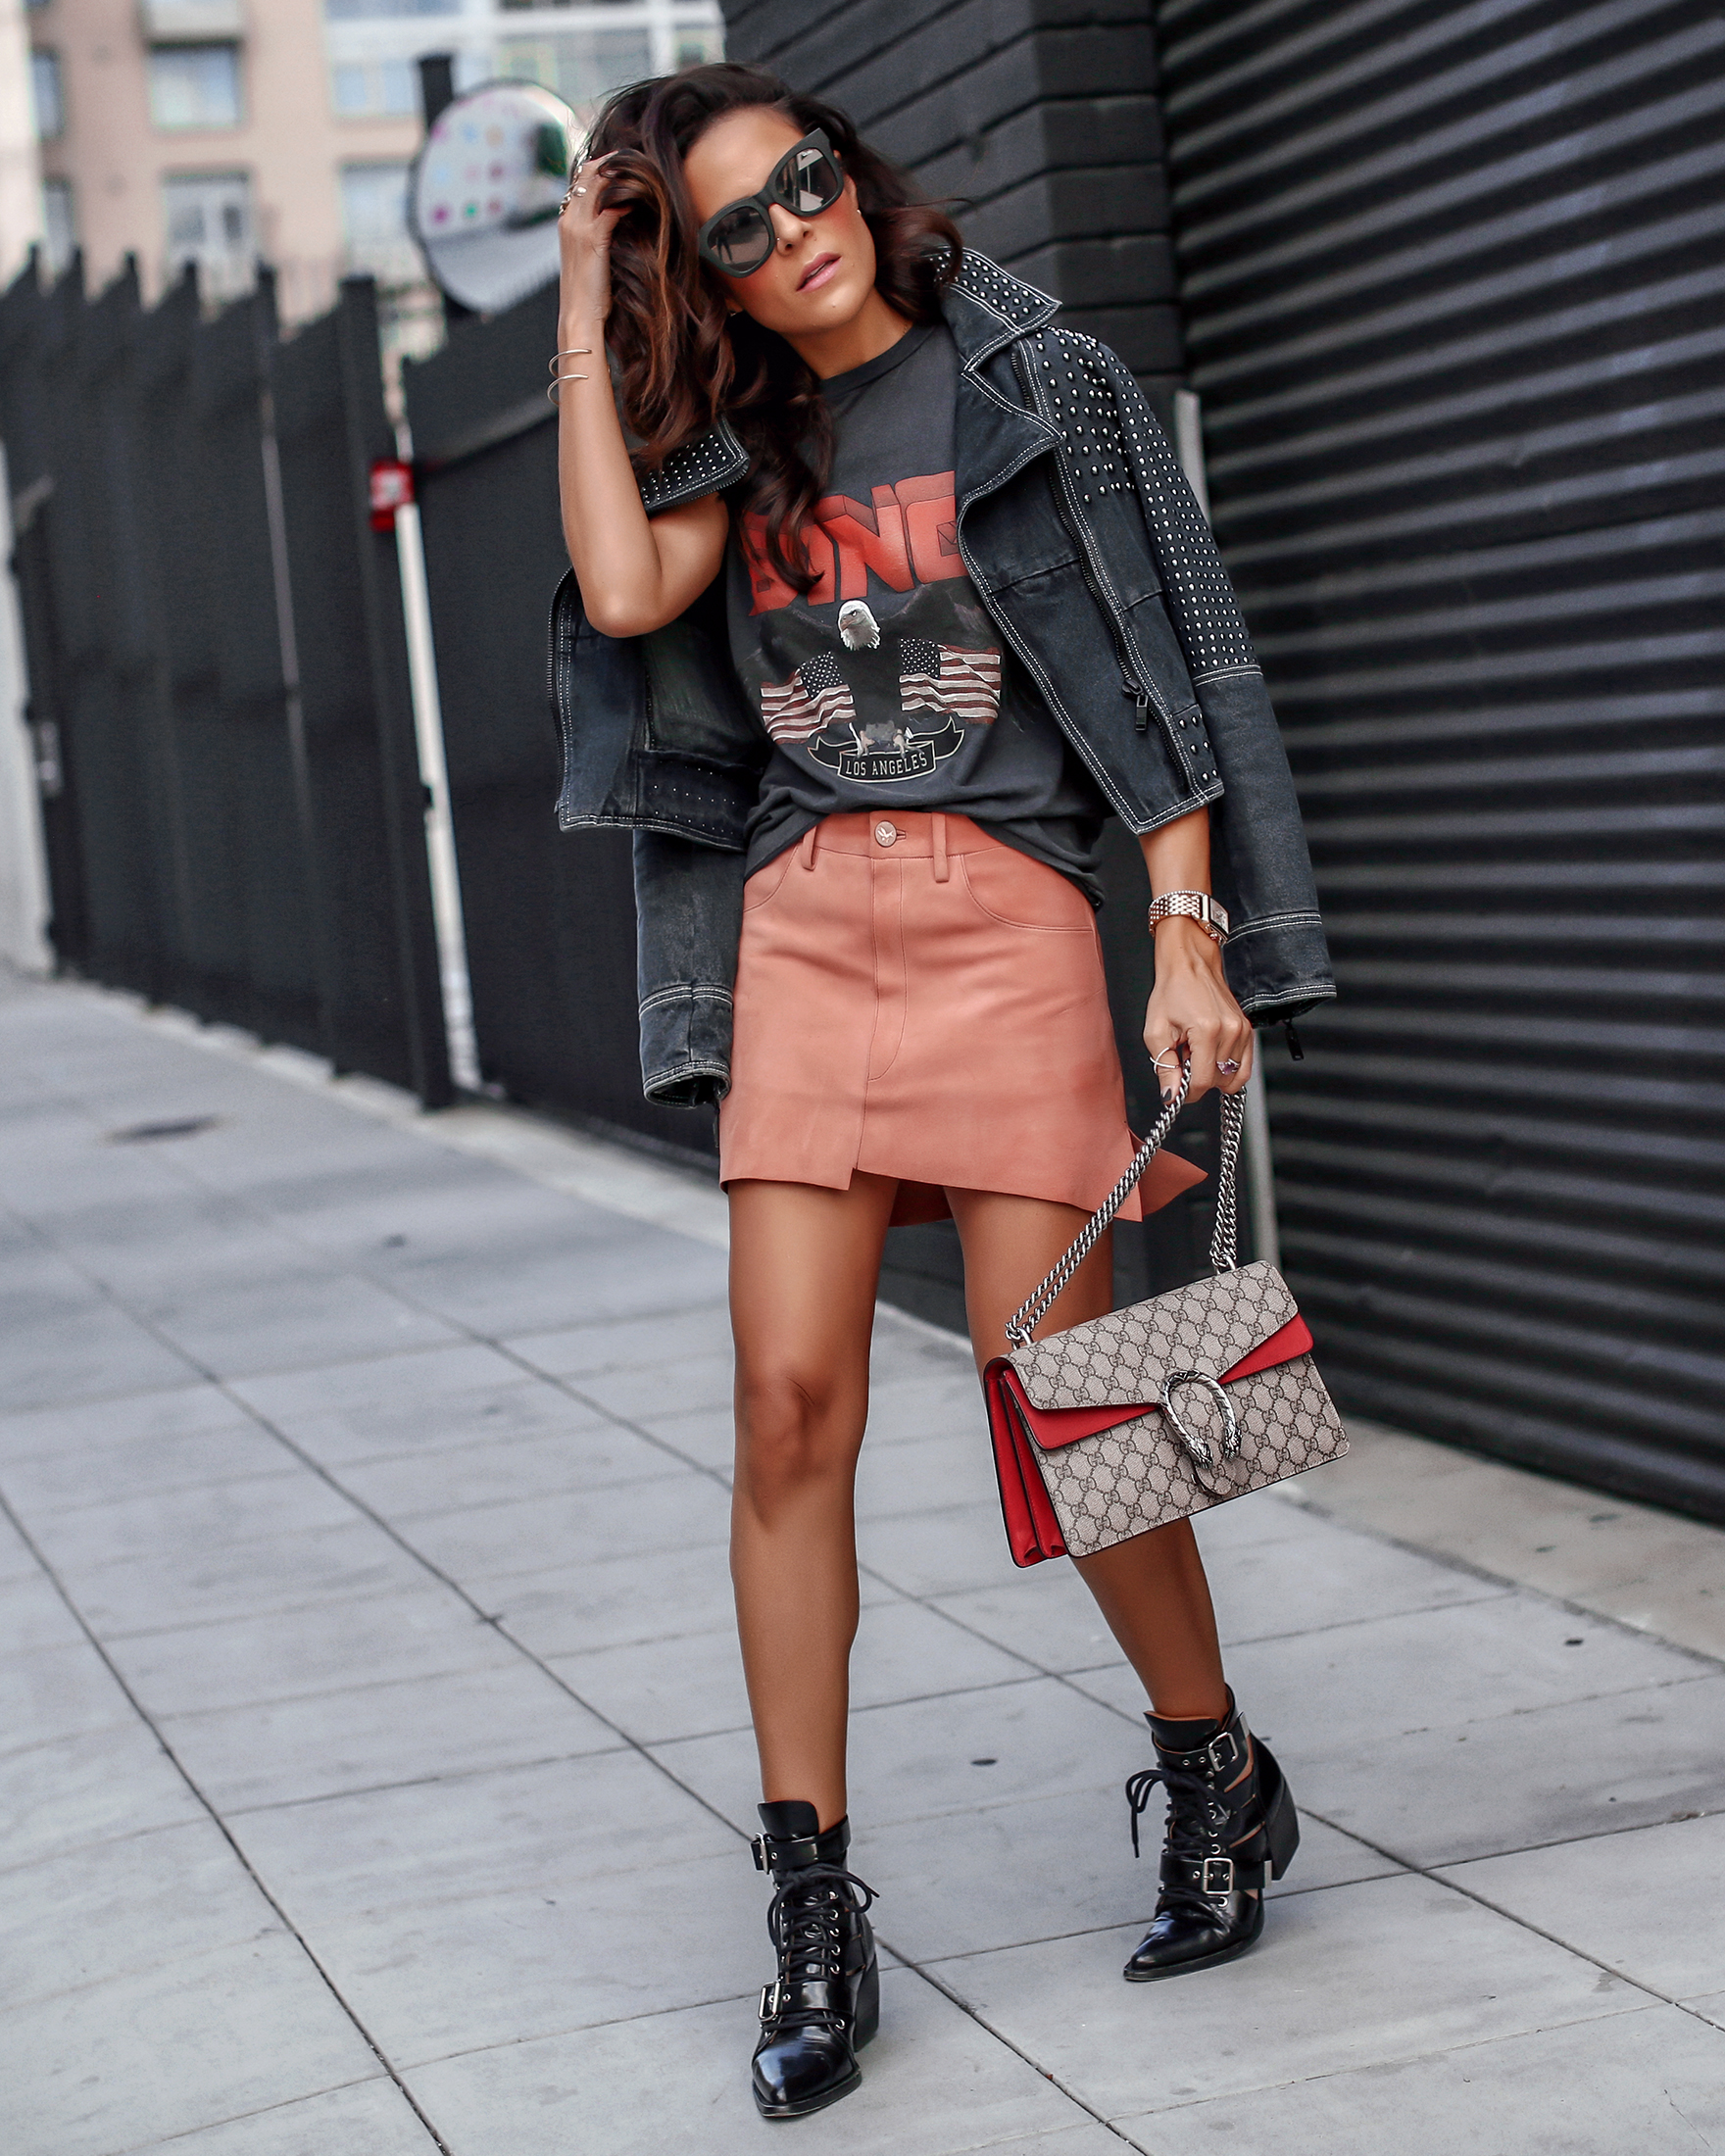 BRunette Woman in Peach Suede Skirt Graphic Tee Chloe Boots